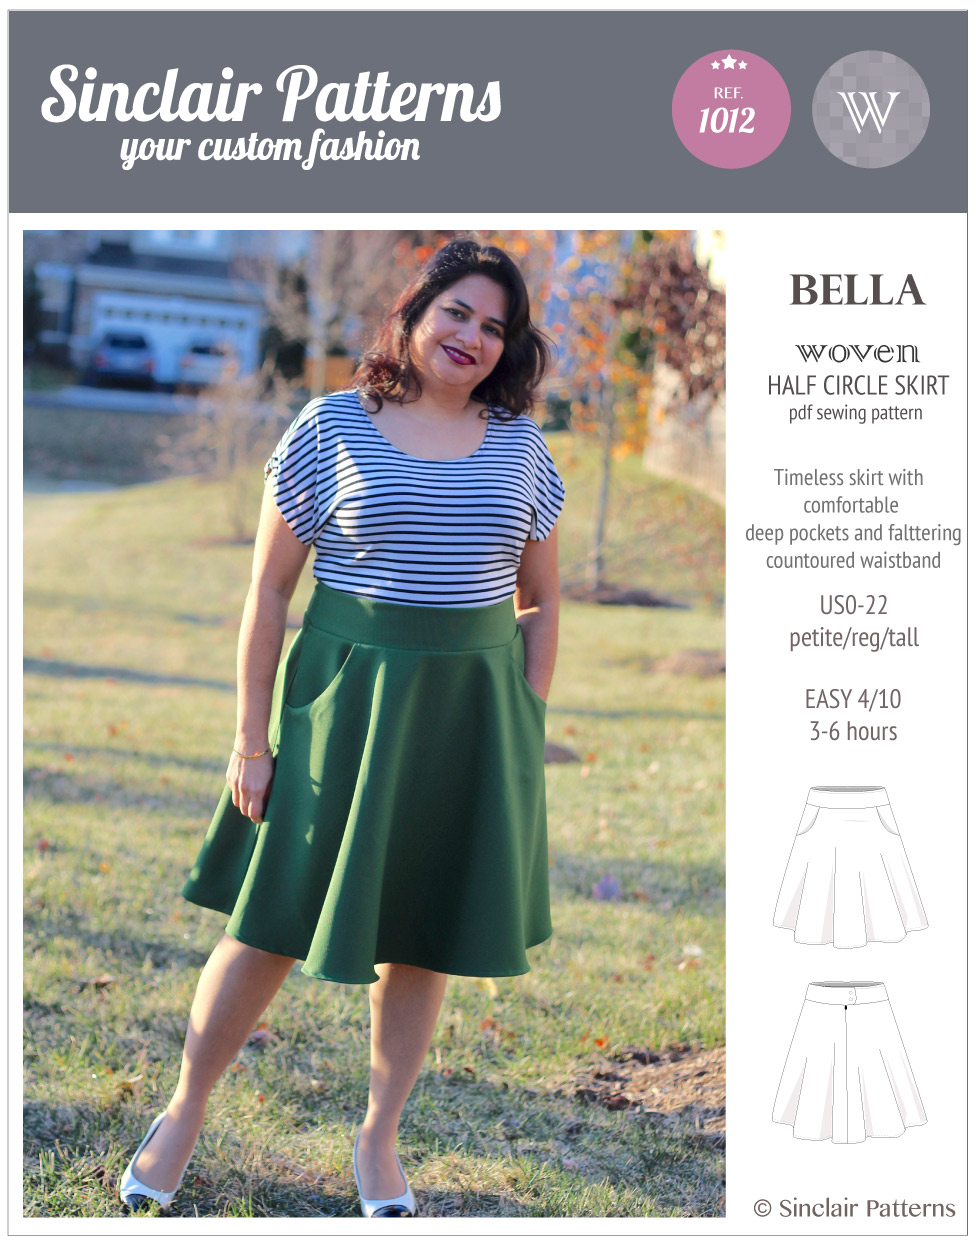 Sinclair Patterns S1012 Bella woven half circle skirt pdf sewing pattern